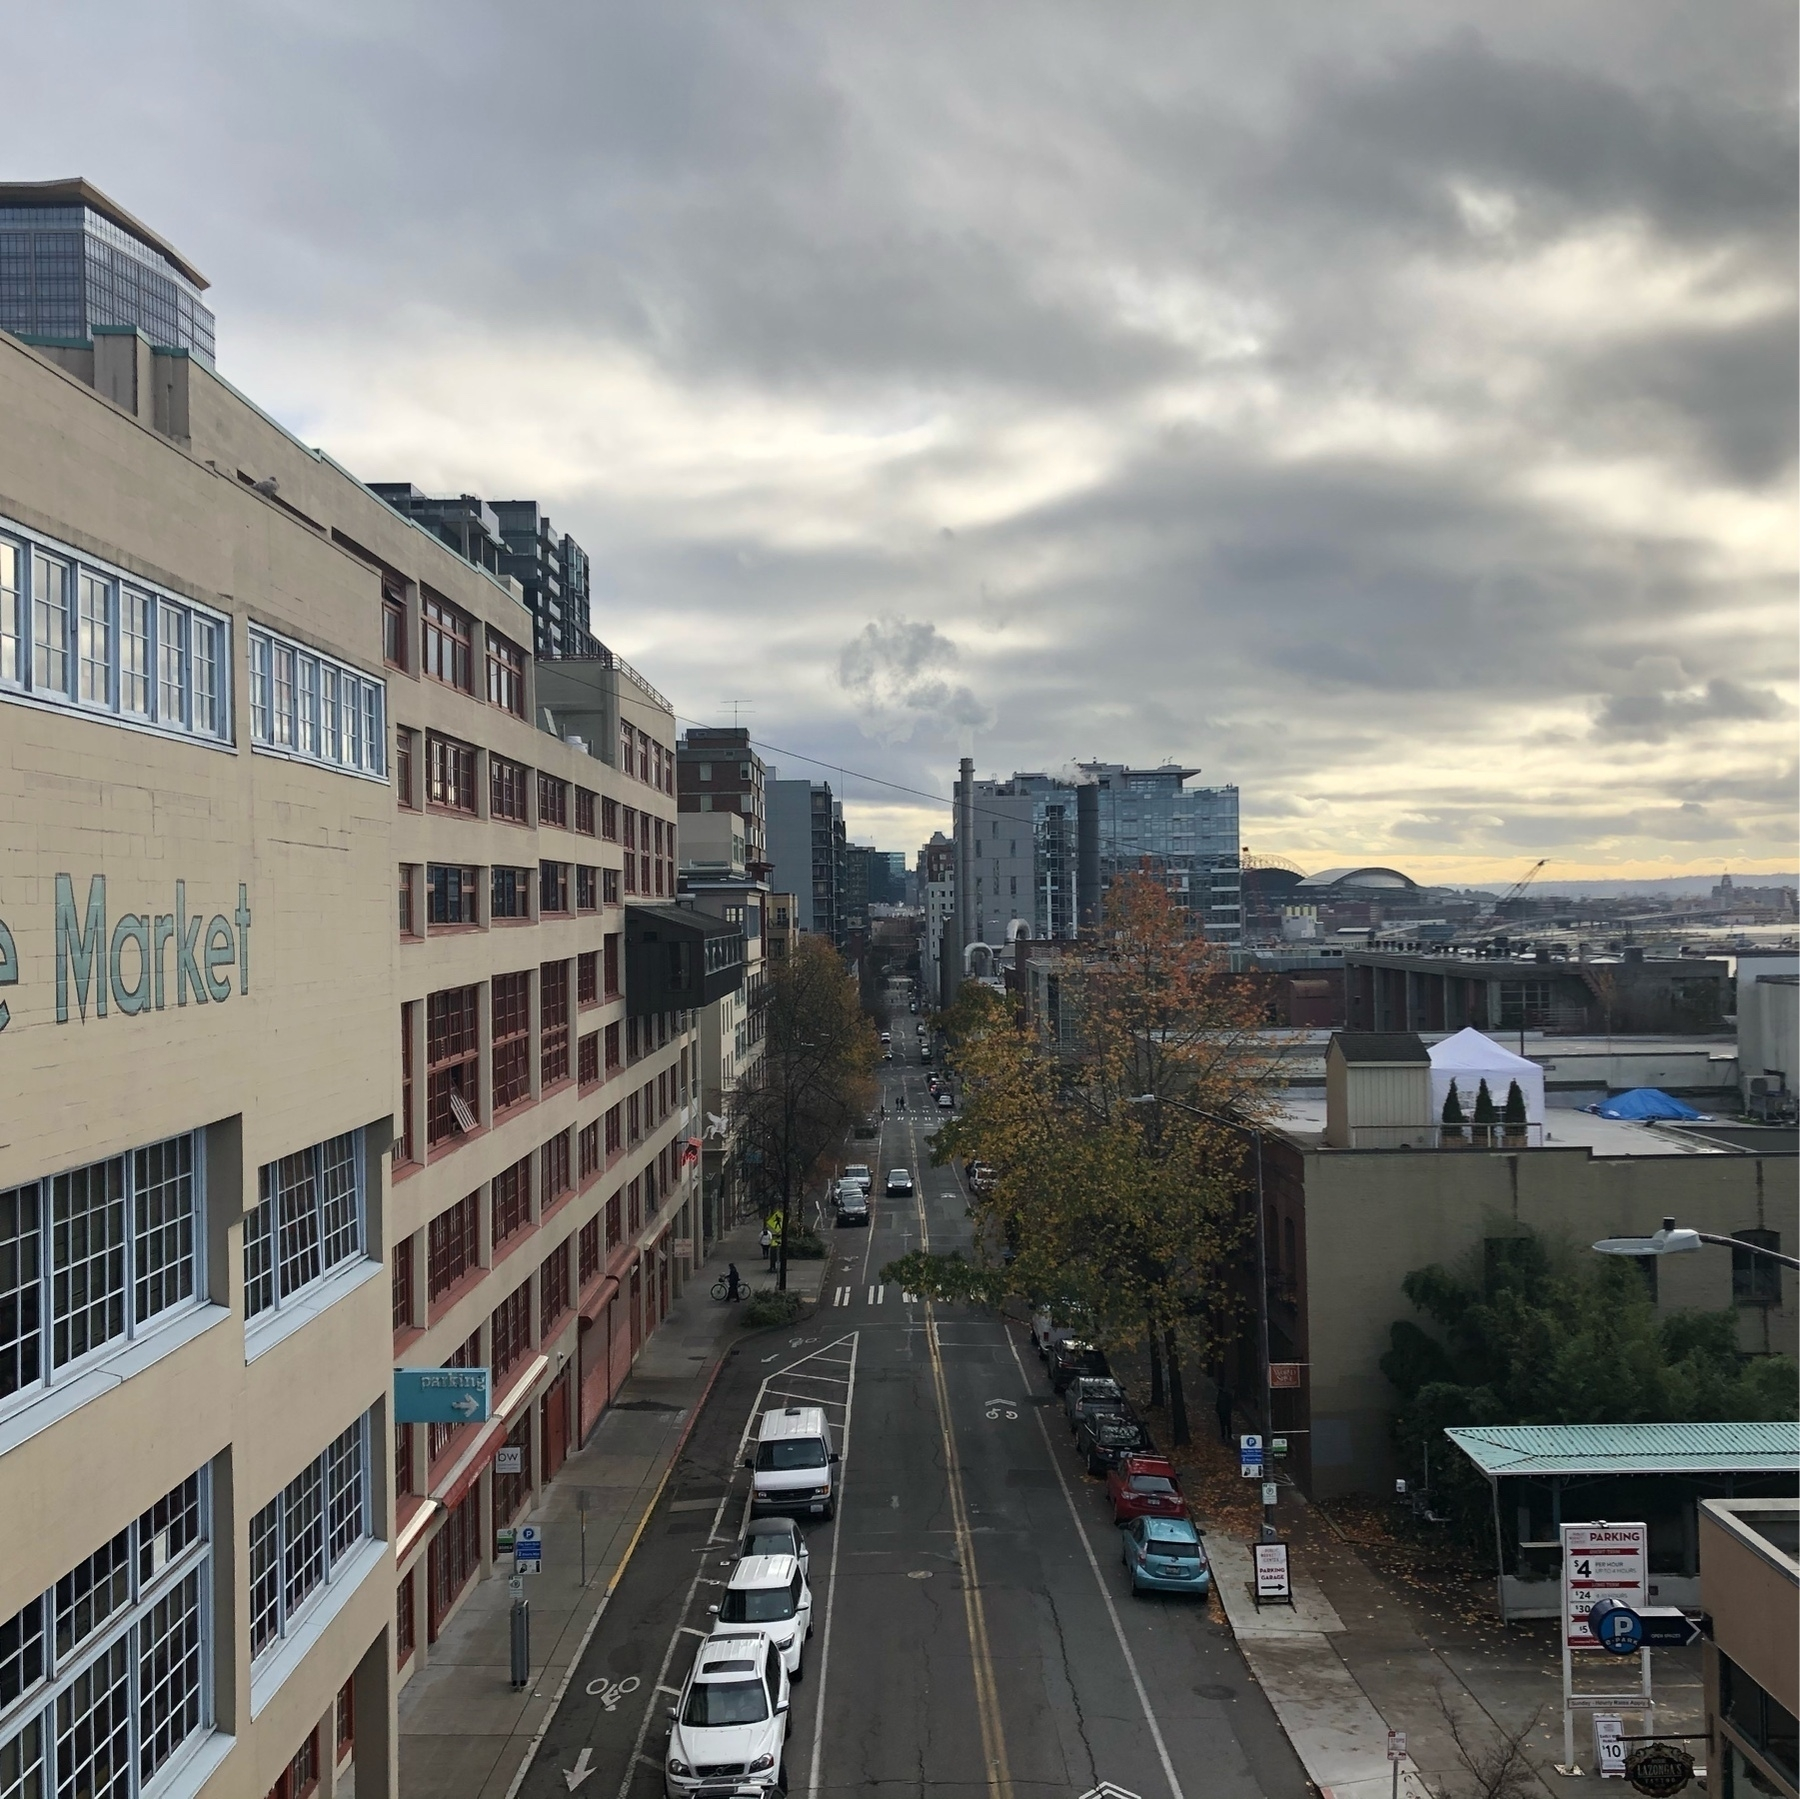 Looking down on Western Ave near pike place market beneath cloudy gray skies.